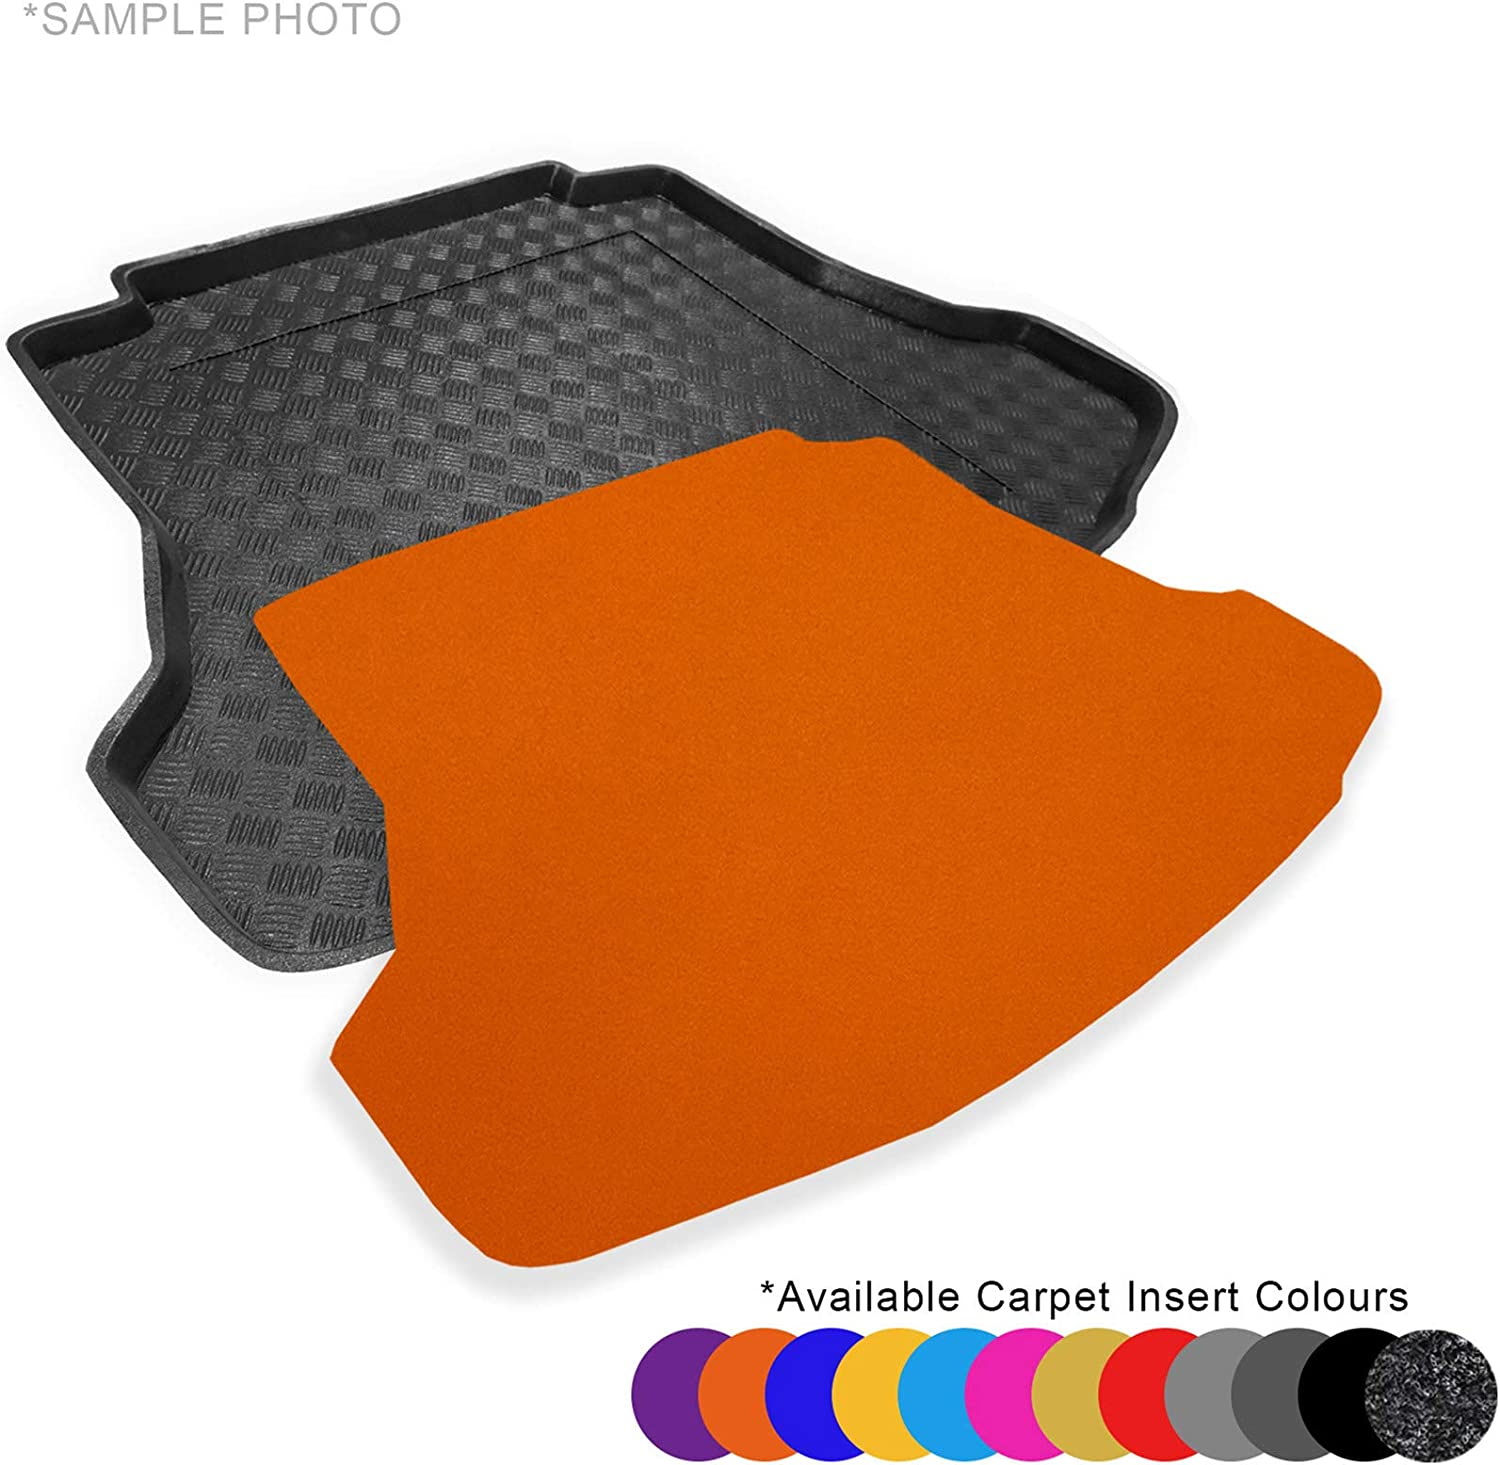 FREE Grey Carpet Insert - CARMATS4U.COM Fully Tailored PVC Boot Liner//Tray Upper level of the boot only 102143